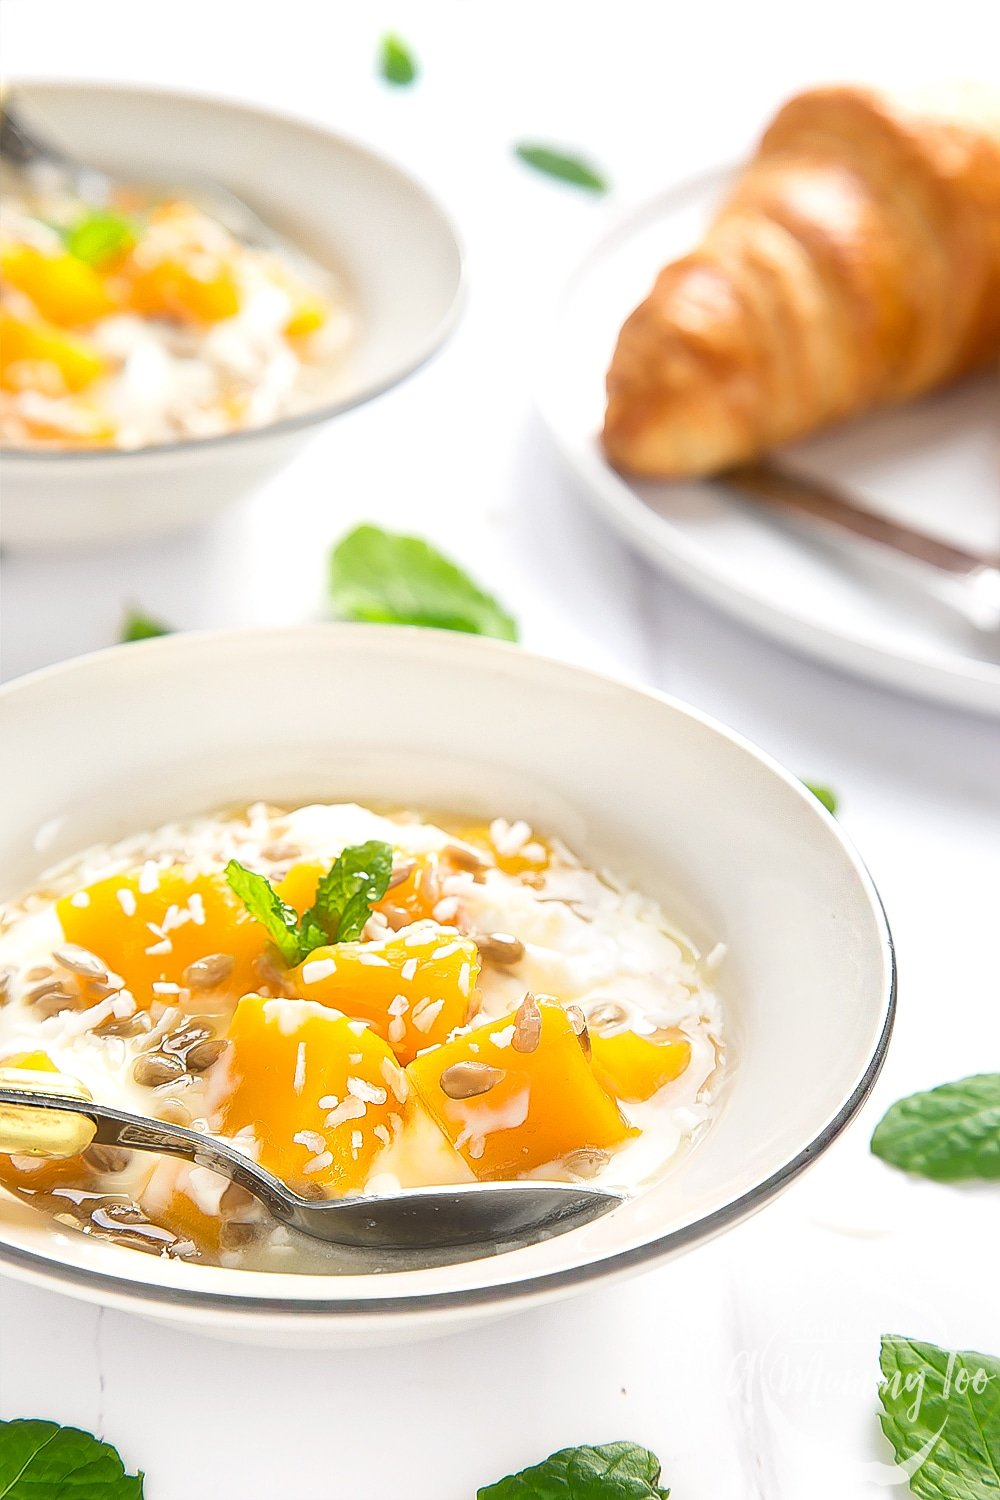 Delicious yogurt and mango breakfast bowls, served on a breakfast table